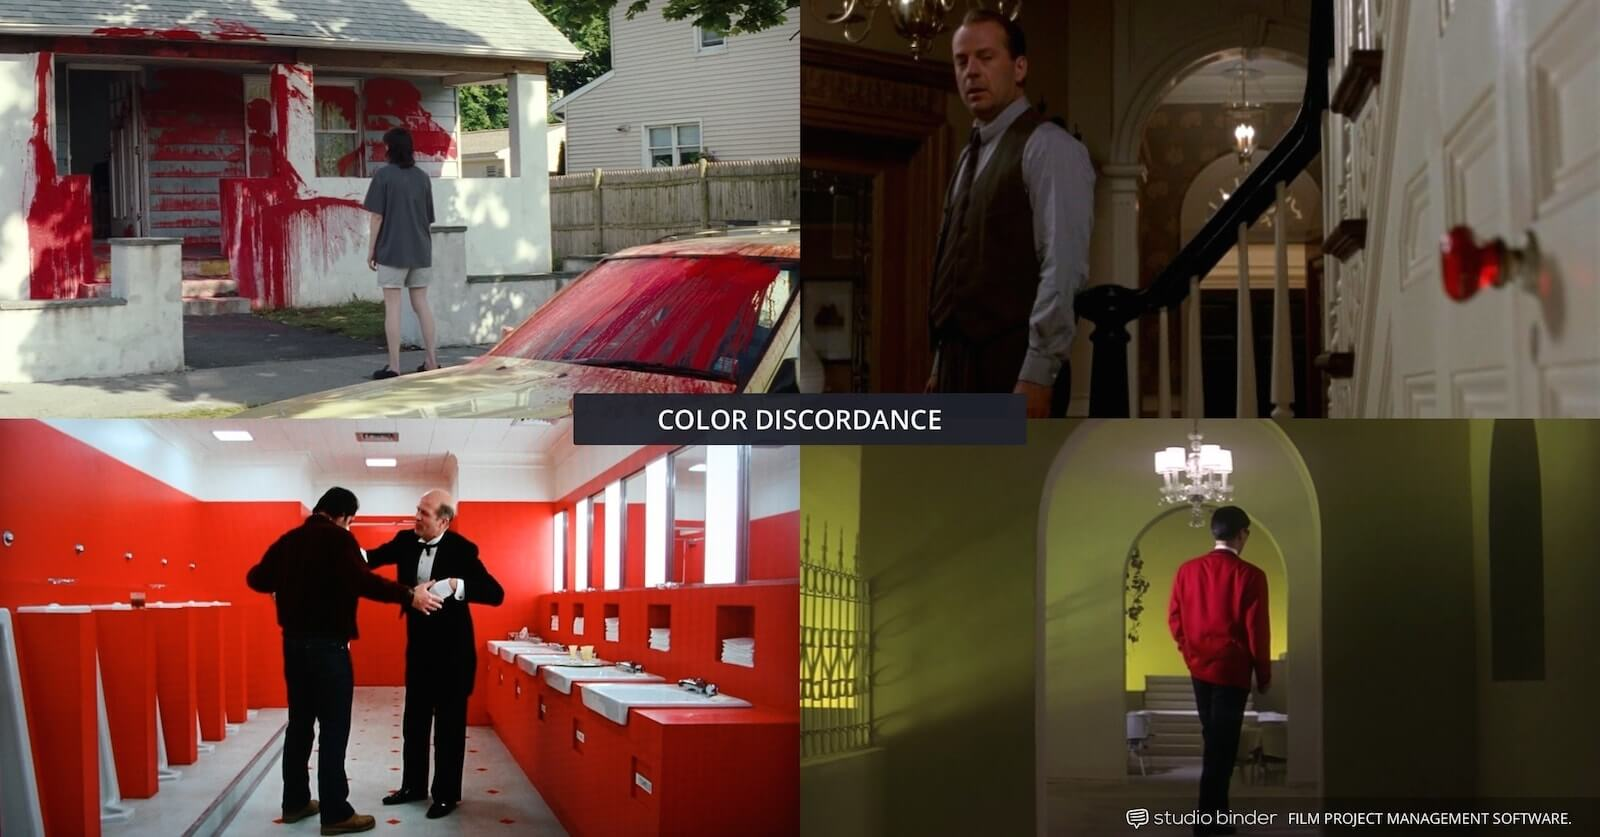 How to Use Color in Film - Example of Movie Color Palette and Scheme - Various Discordance Examples-min